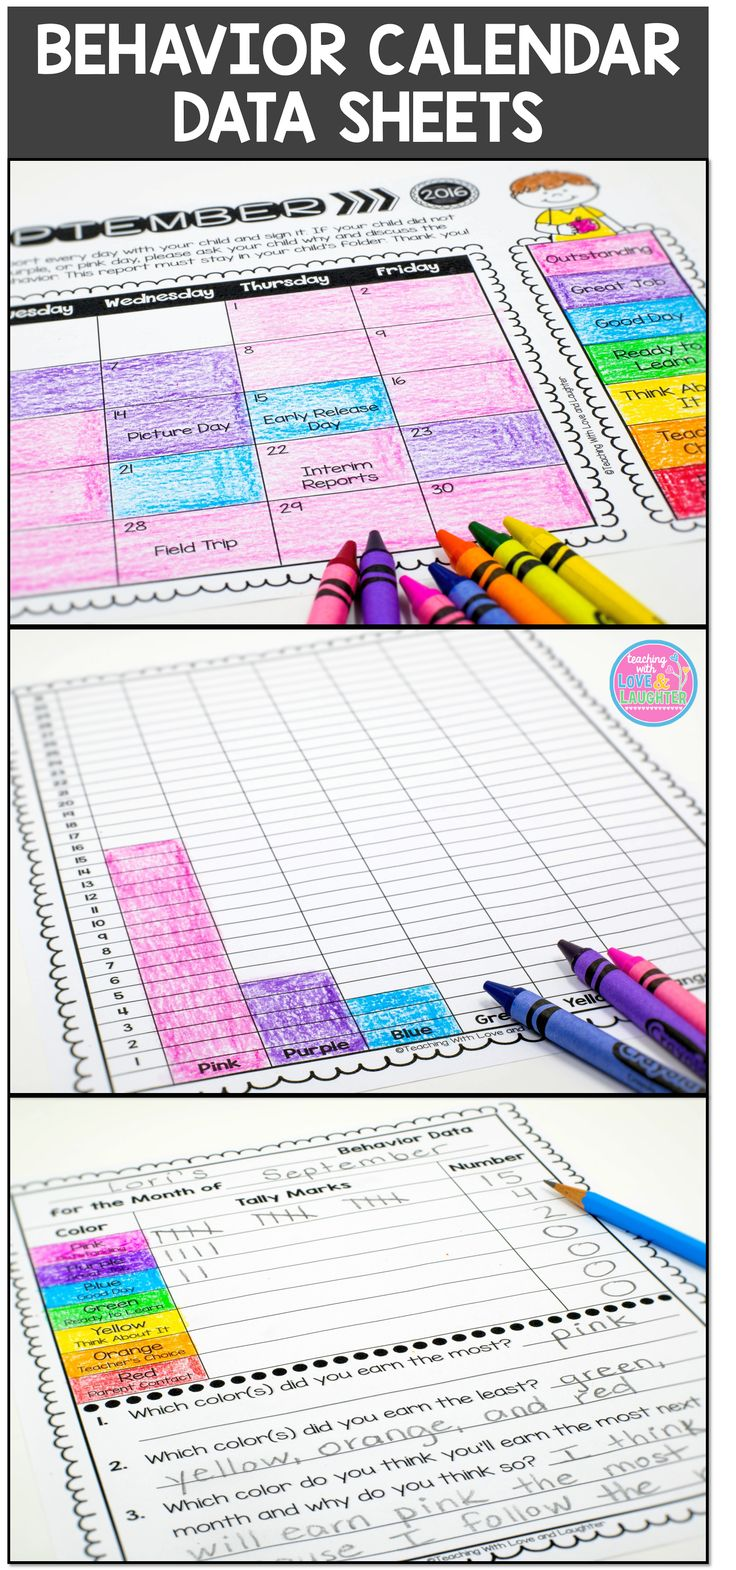 best ideas about behavior reflection sheet this is editable ed behavior calendar data sheets that you and your child can use for home and school this can be used to encourage self awareness